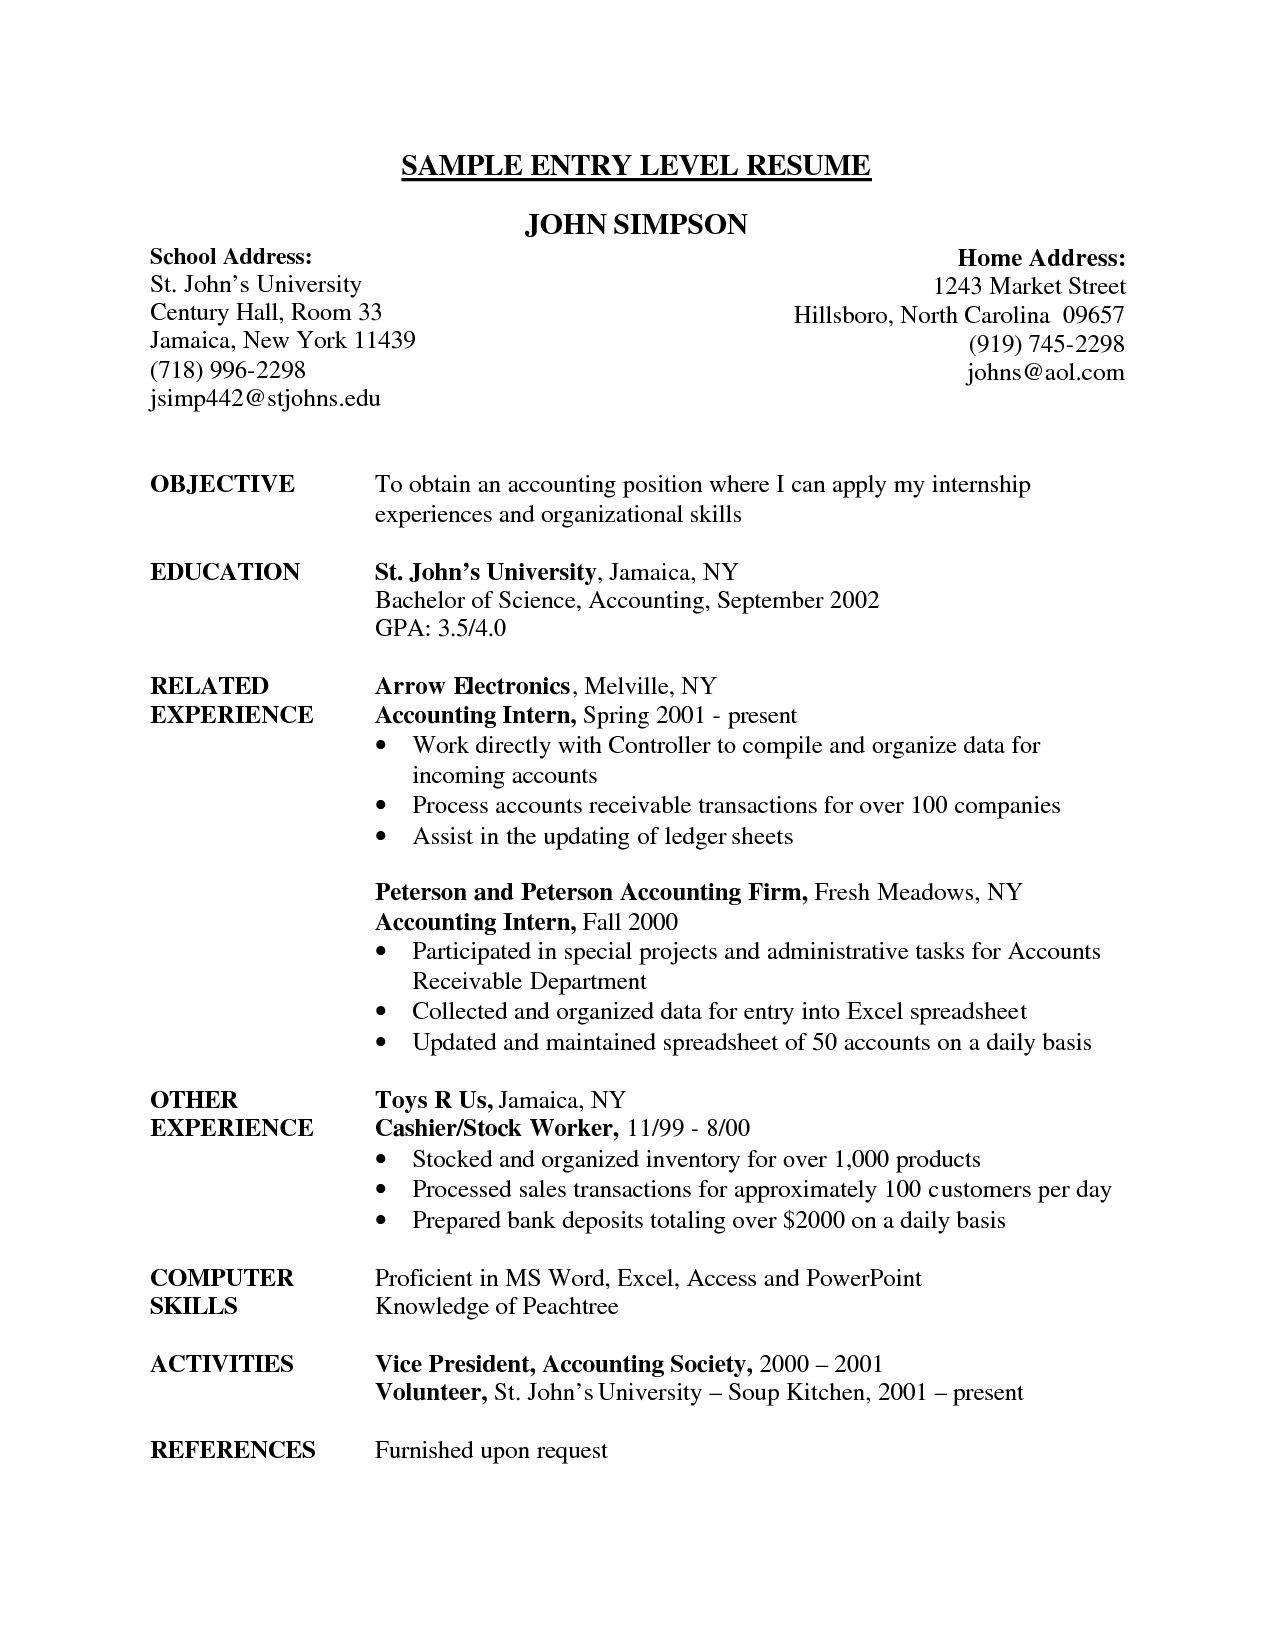 Accounting Internship Resume Objective New Resume Examples Entry Level  Resume Examples  Pinterest  Resume .